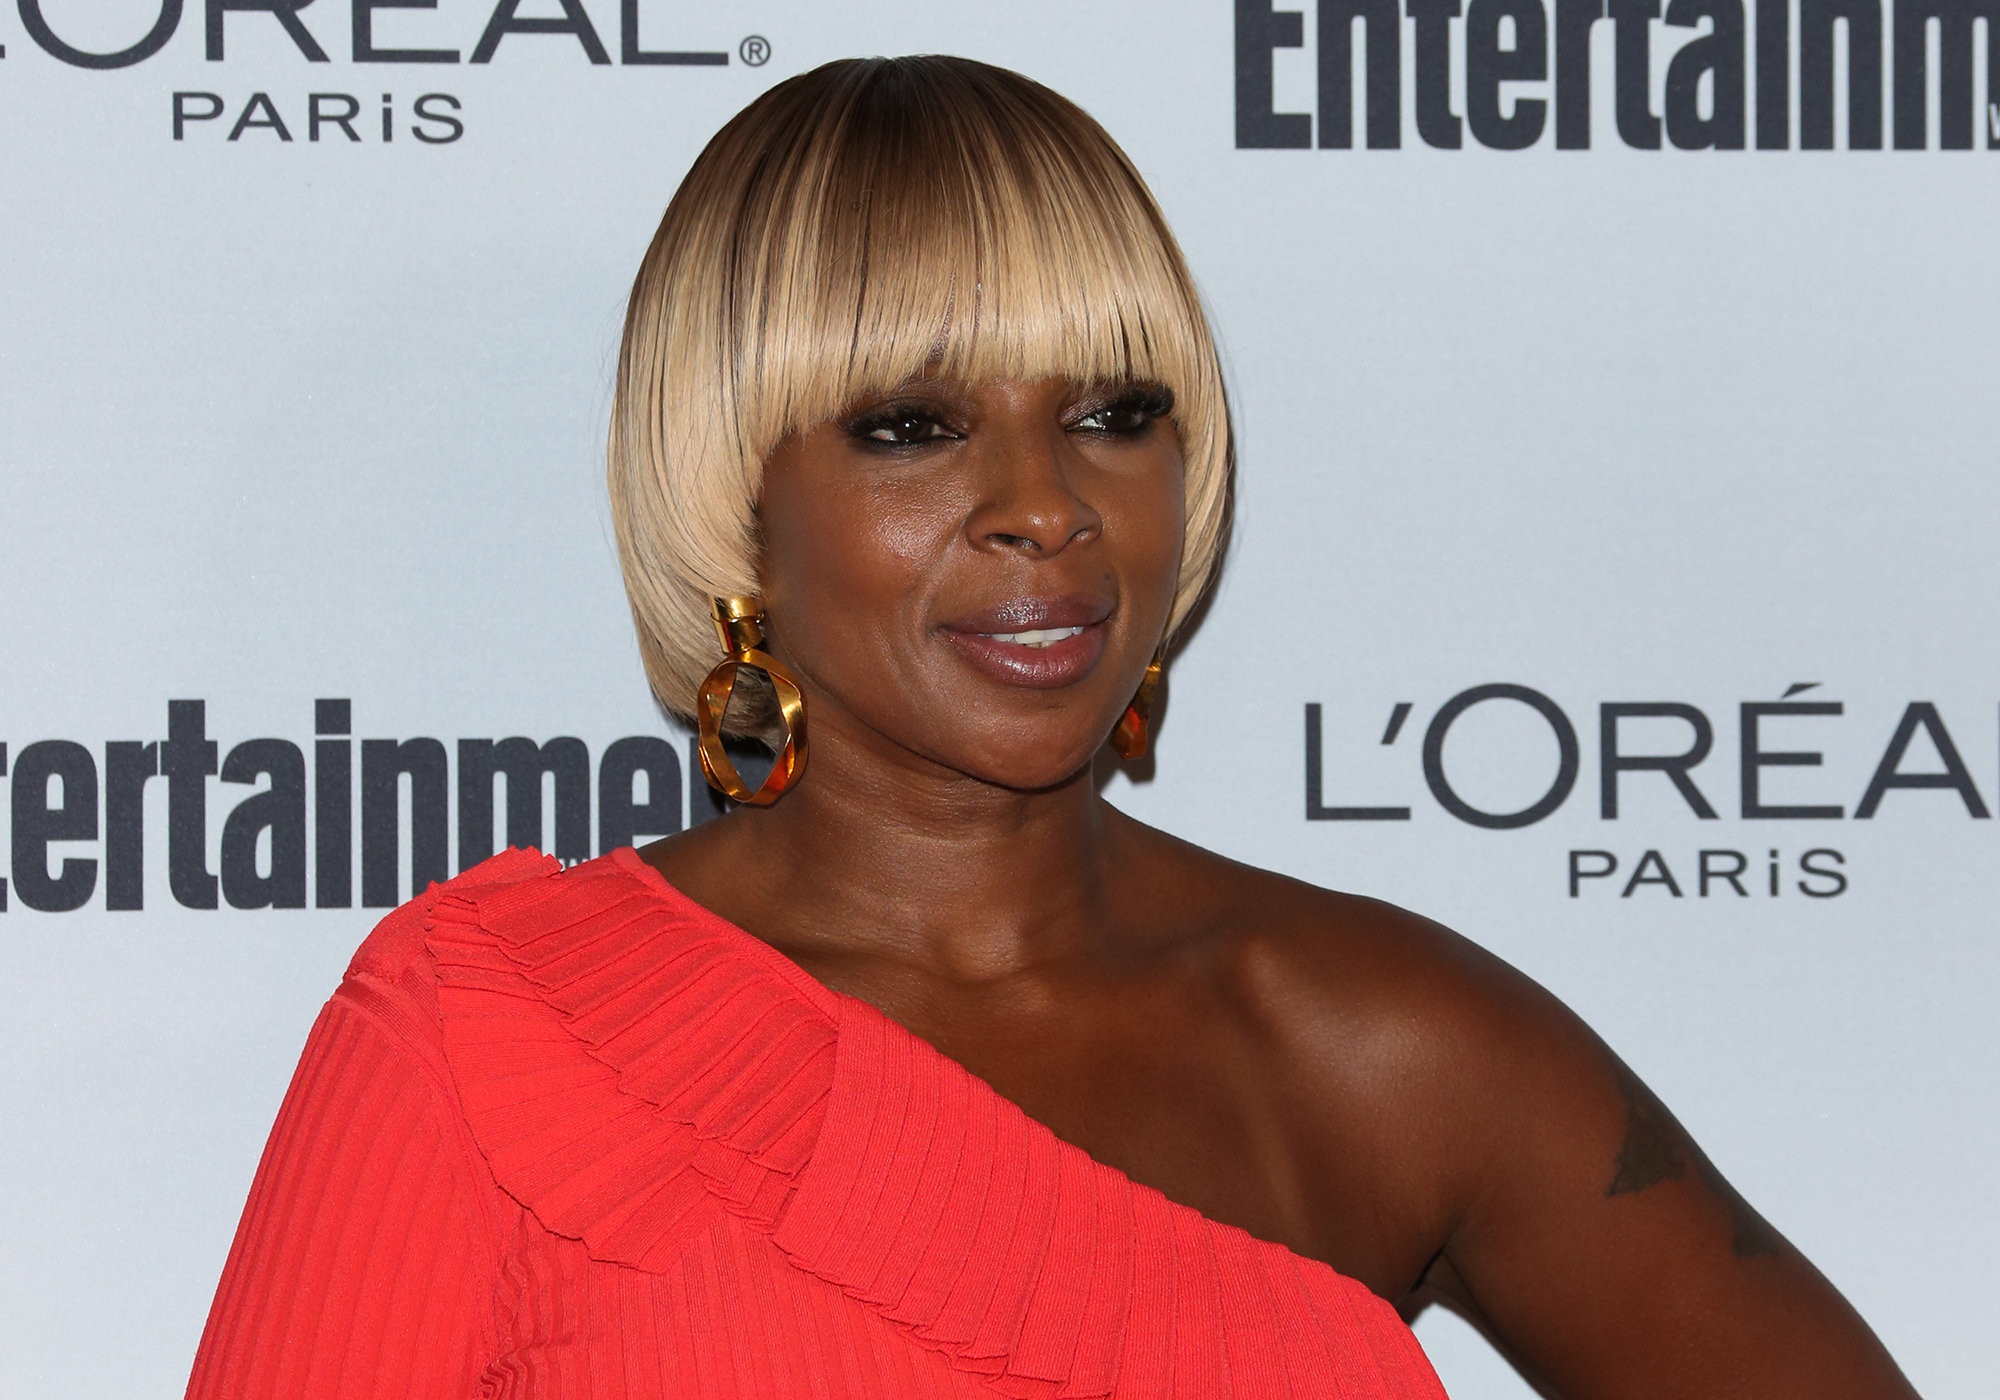 Mary J. Blige attends Entertainment Weekly's 2016 Pre-Emmy party.  (Photo by Paul Archuleta/FilmMagic)